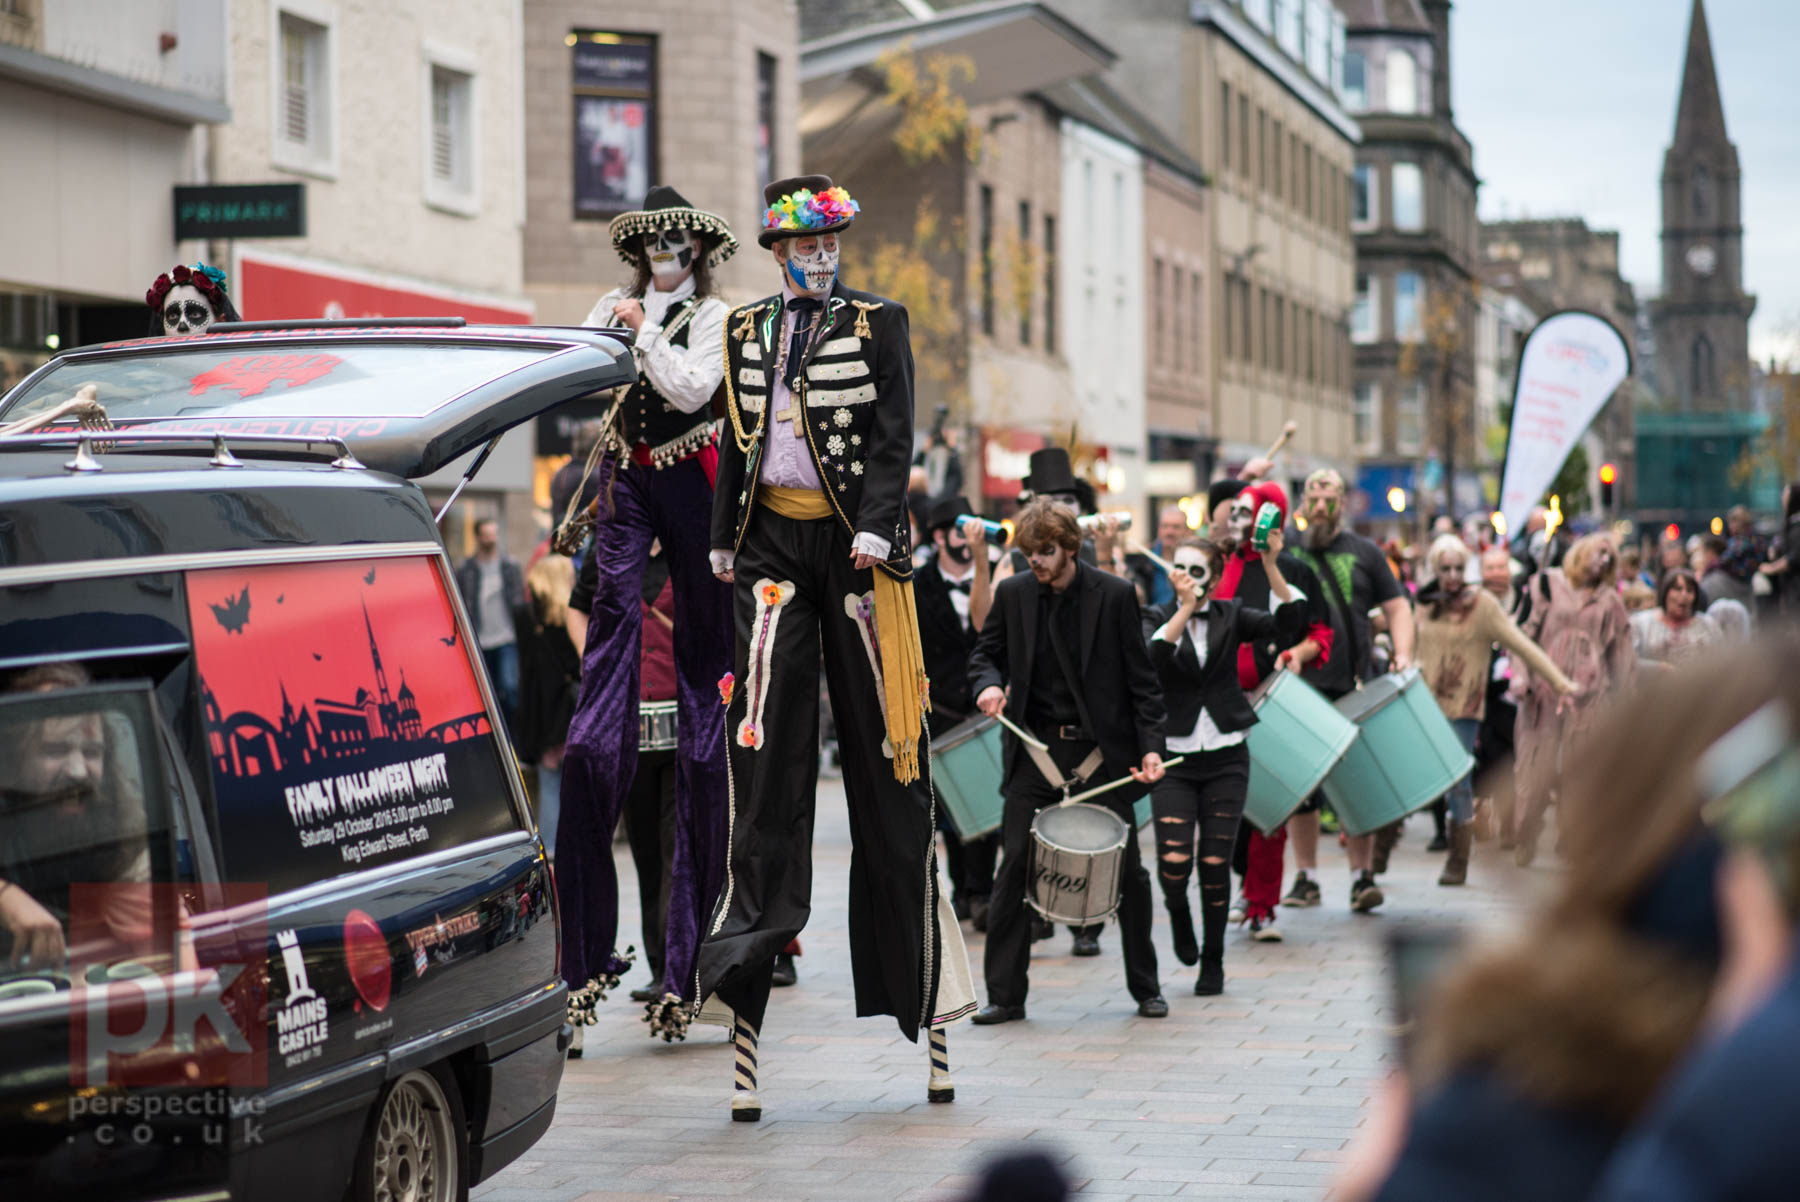 Family Hallowe'en parade making its way down the Perth High Street -  what a sight!